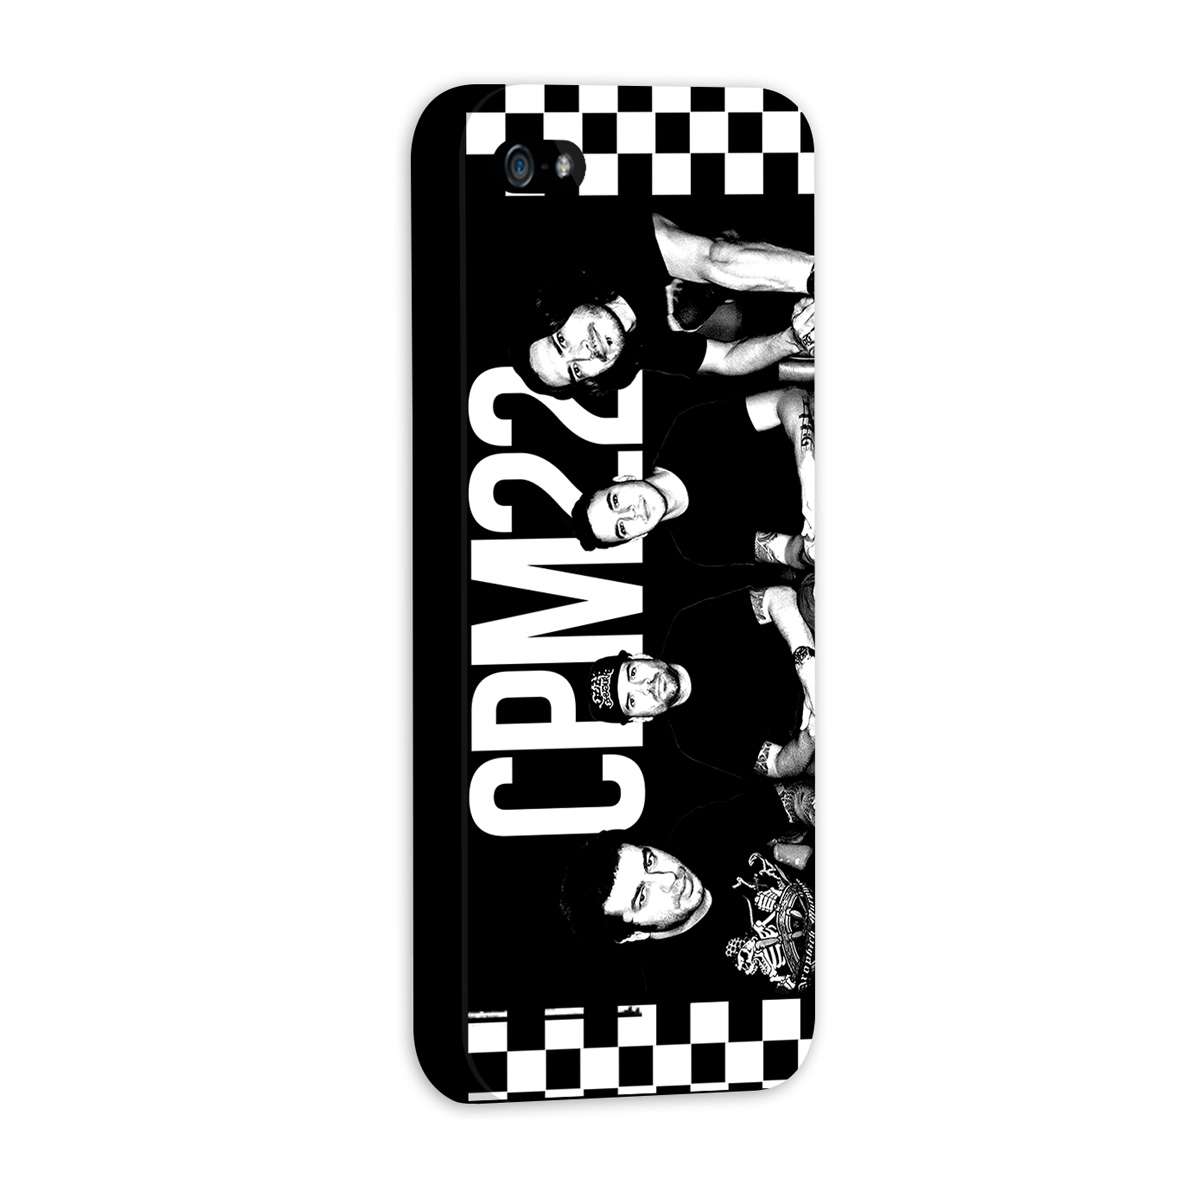 Capa de iPhone 5/5S CPM 22 Foto